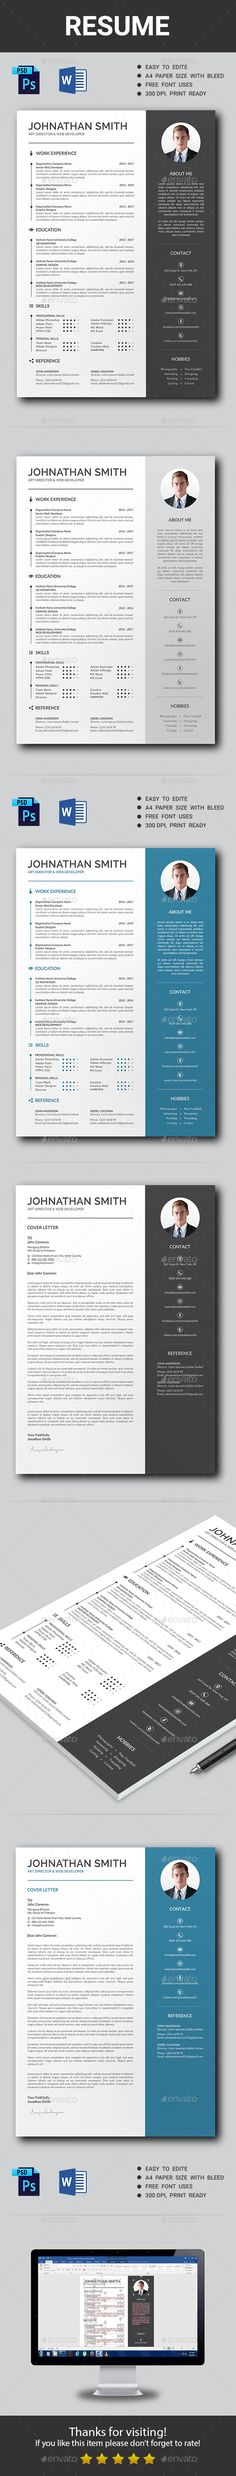 #Resume - Resumes Stationery Download here: https://graphicriver.net/item/resume/19365437?ref=alena994